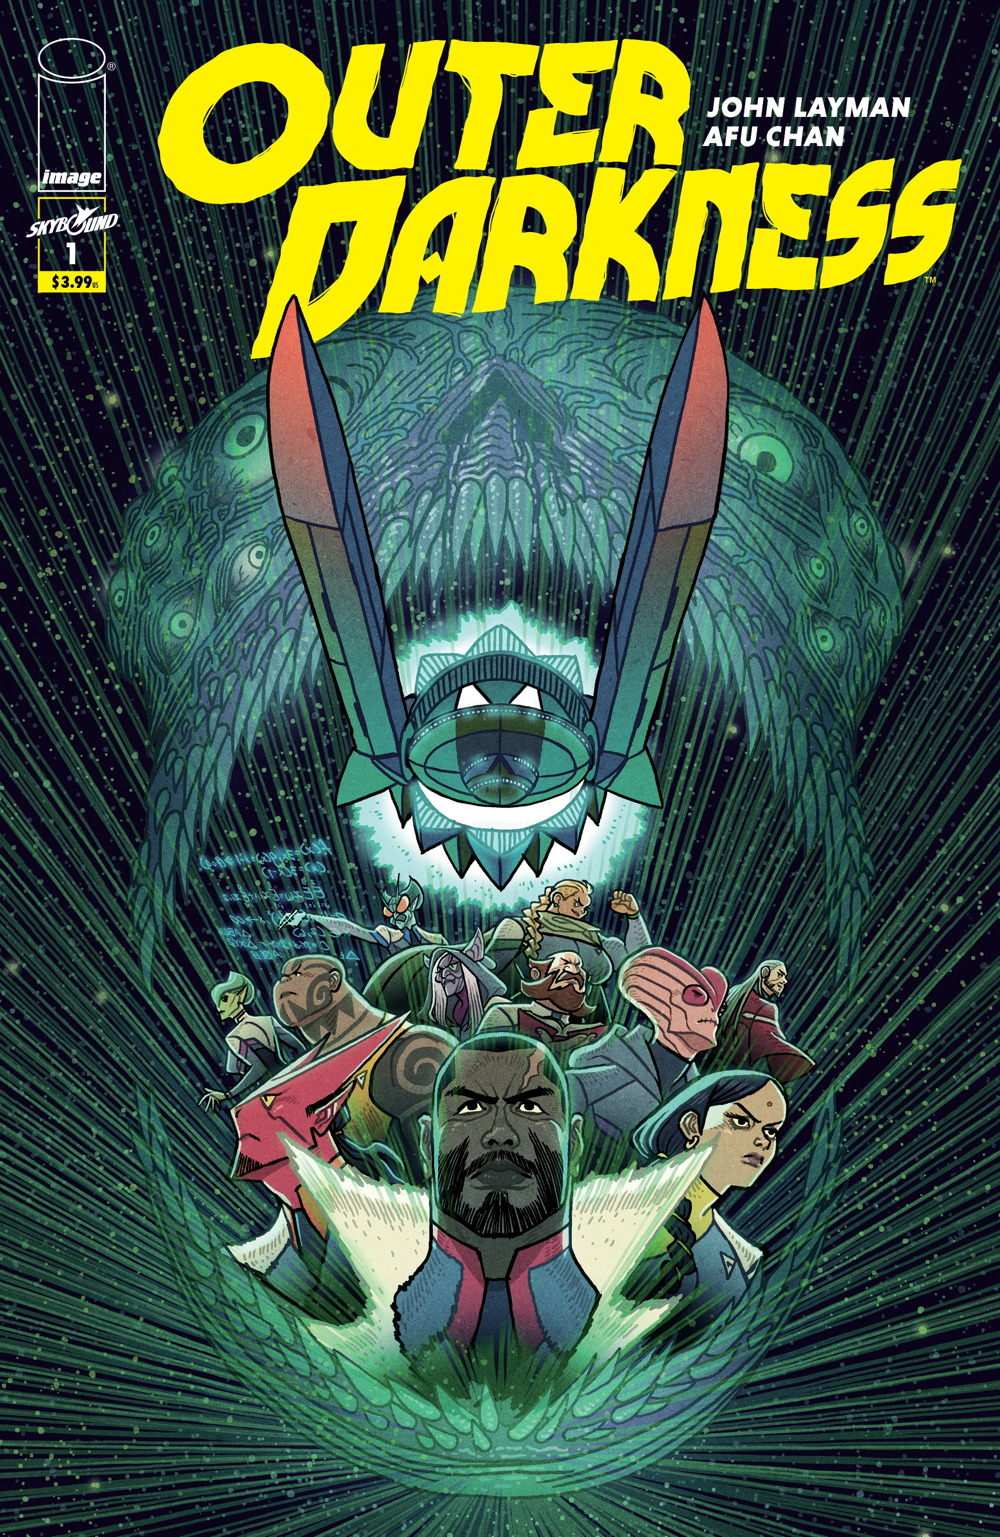 OuterDarkness01_Cover (002).jpg